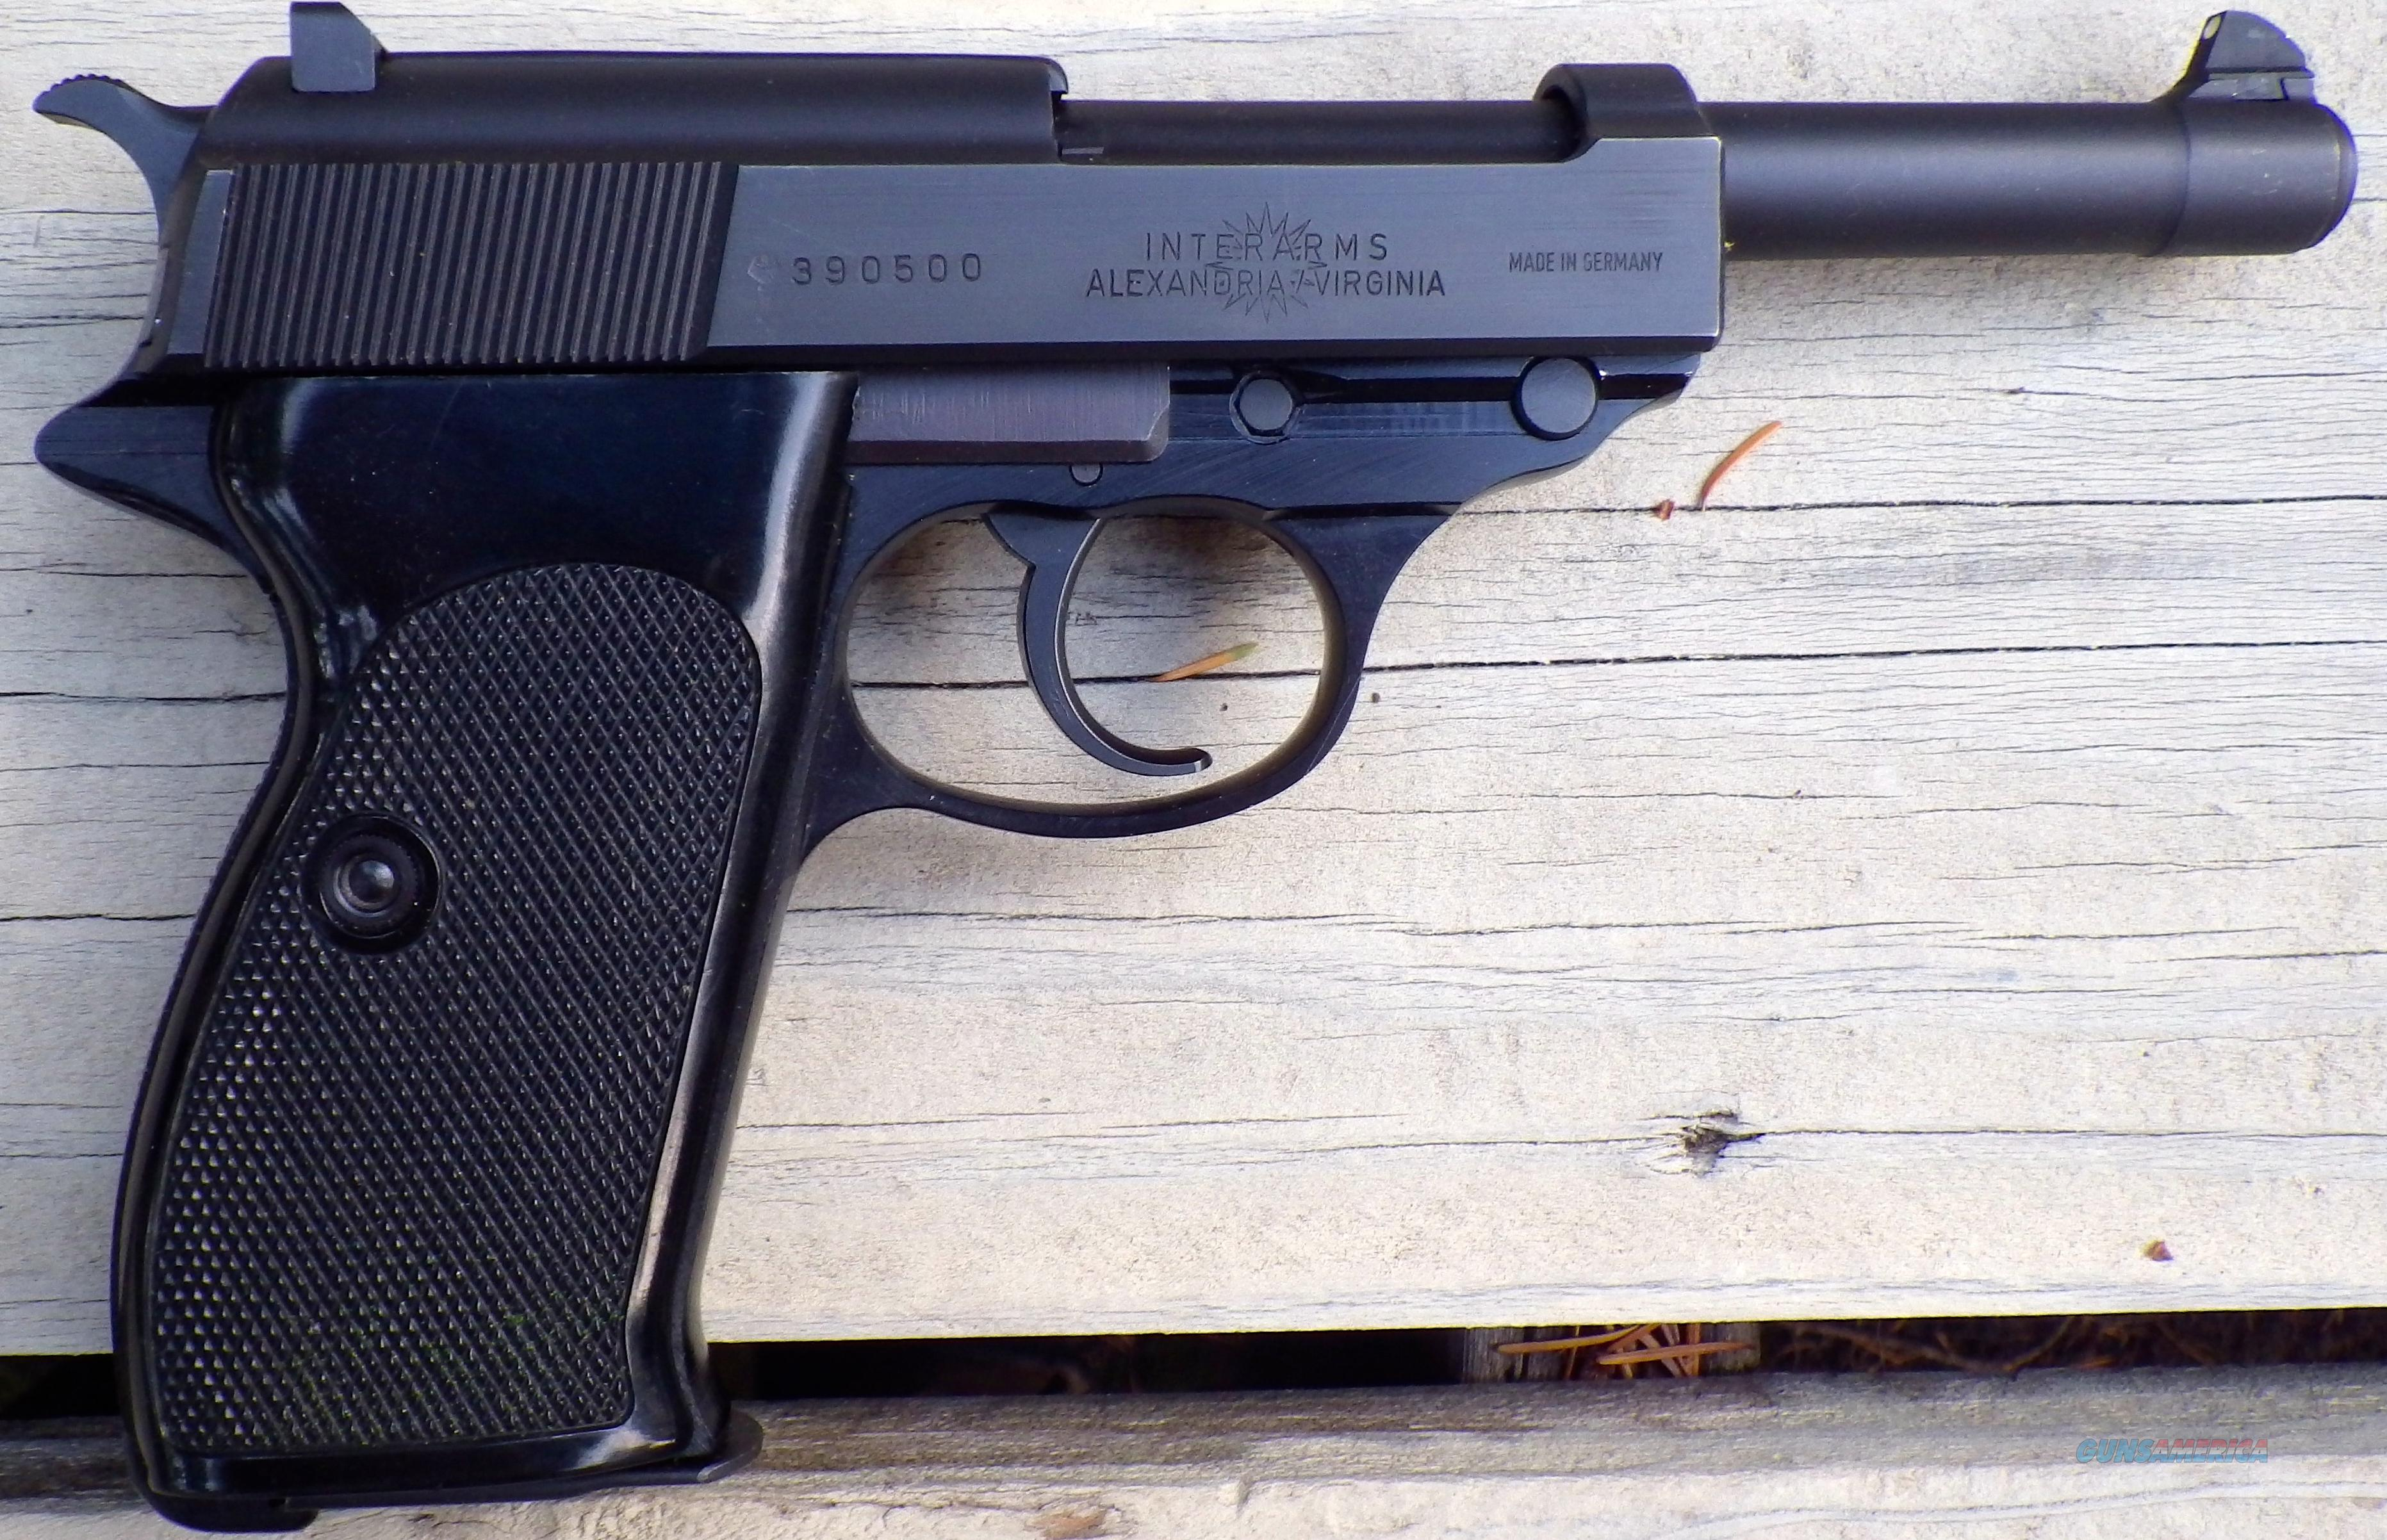 Walther P38 9mm, 3 mags, box, appears unfired, Interarms  Guns > Pistols > Walther Pistols > Post WWII > P38